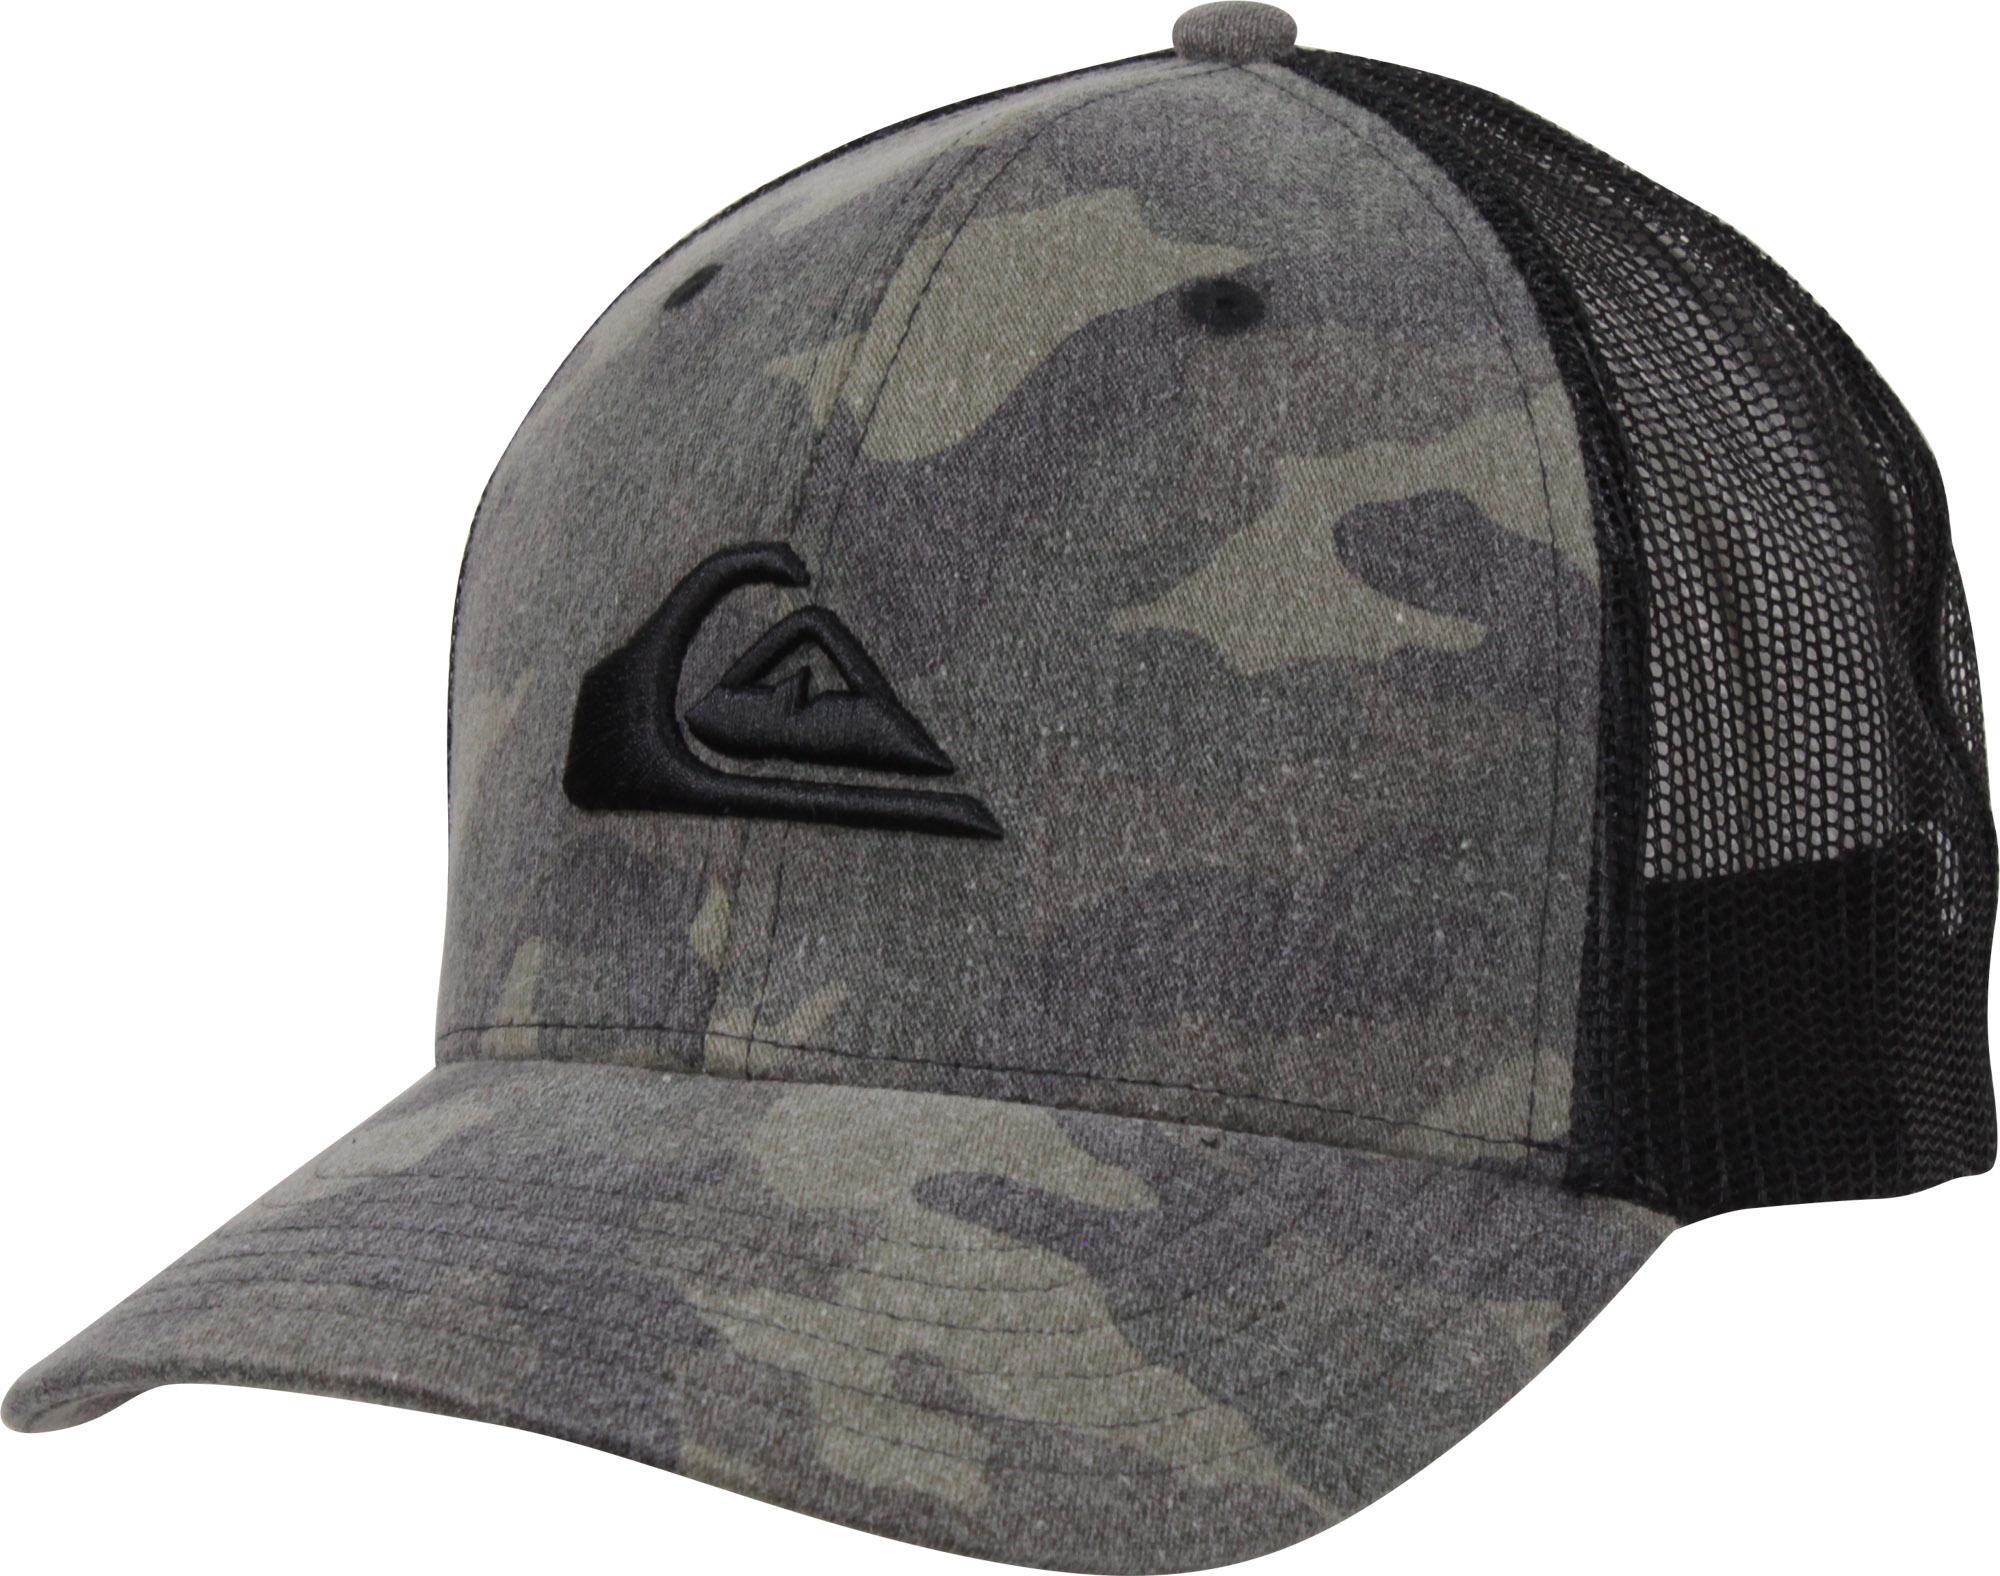 baa16ab68d7df Image is loading Quiksilver-Mens-Grounder-Snapback-Trucker-Hat-Camo-Black